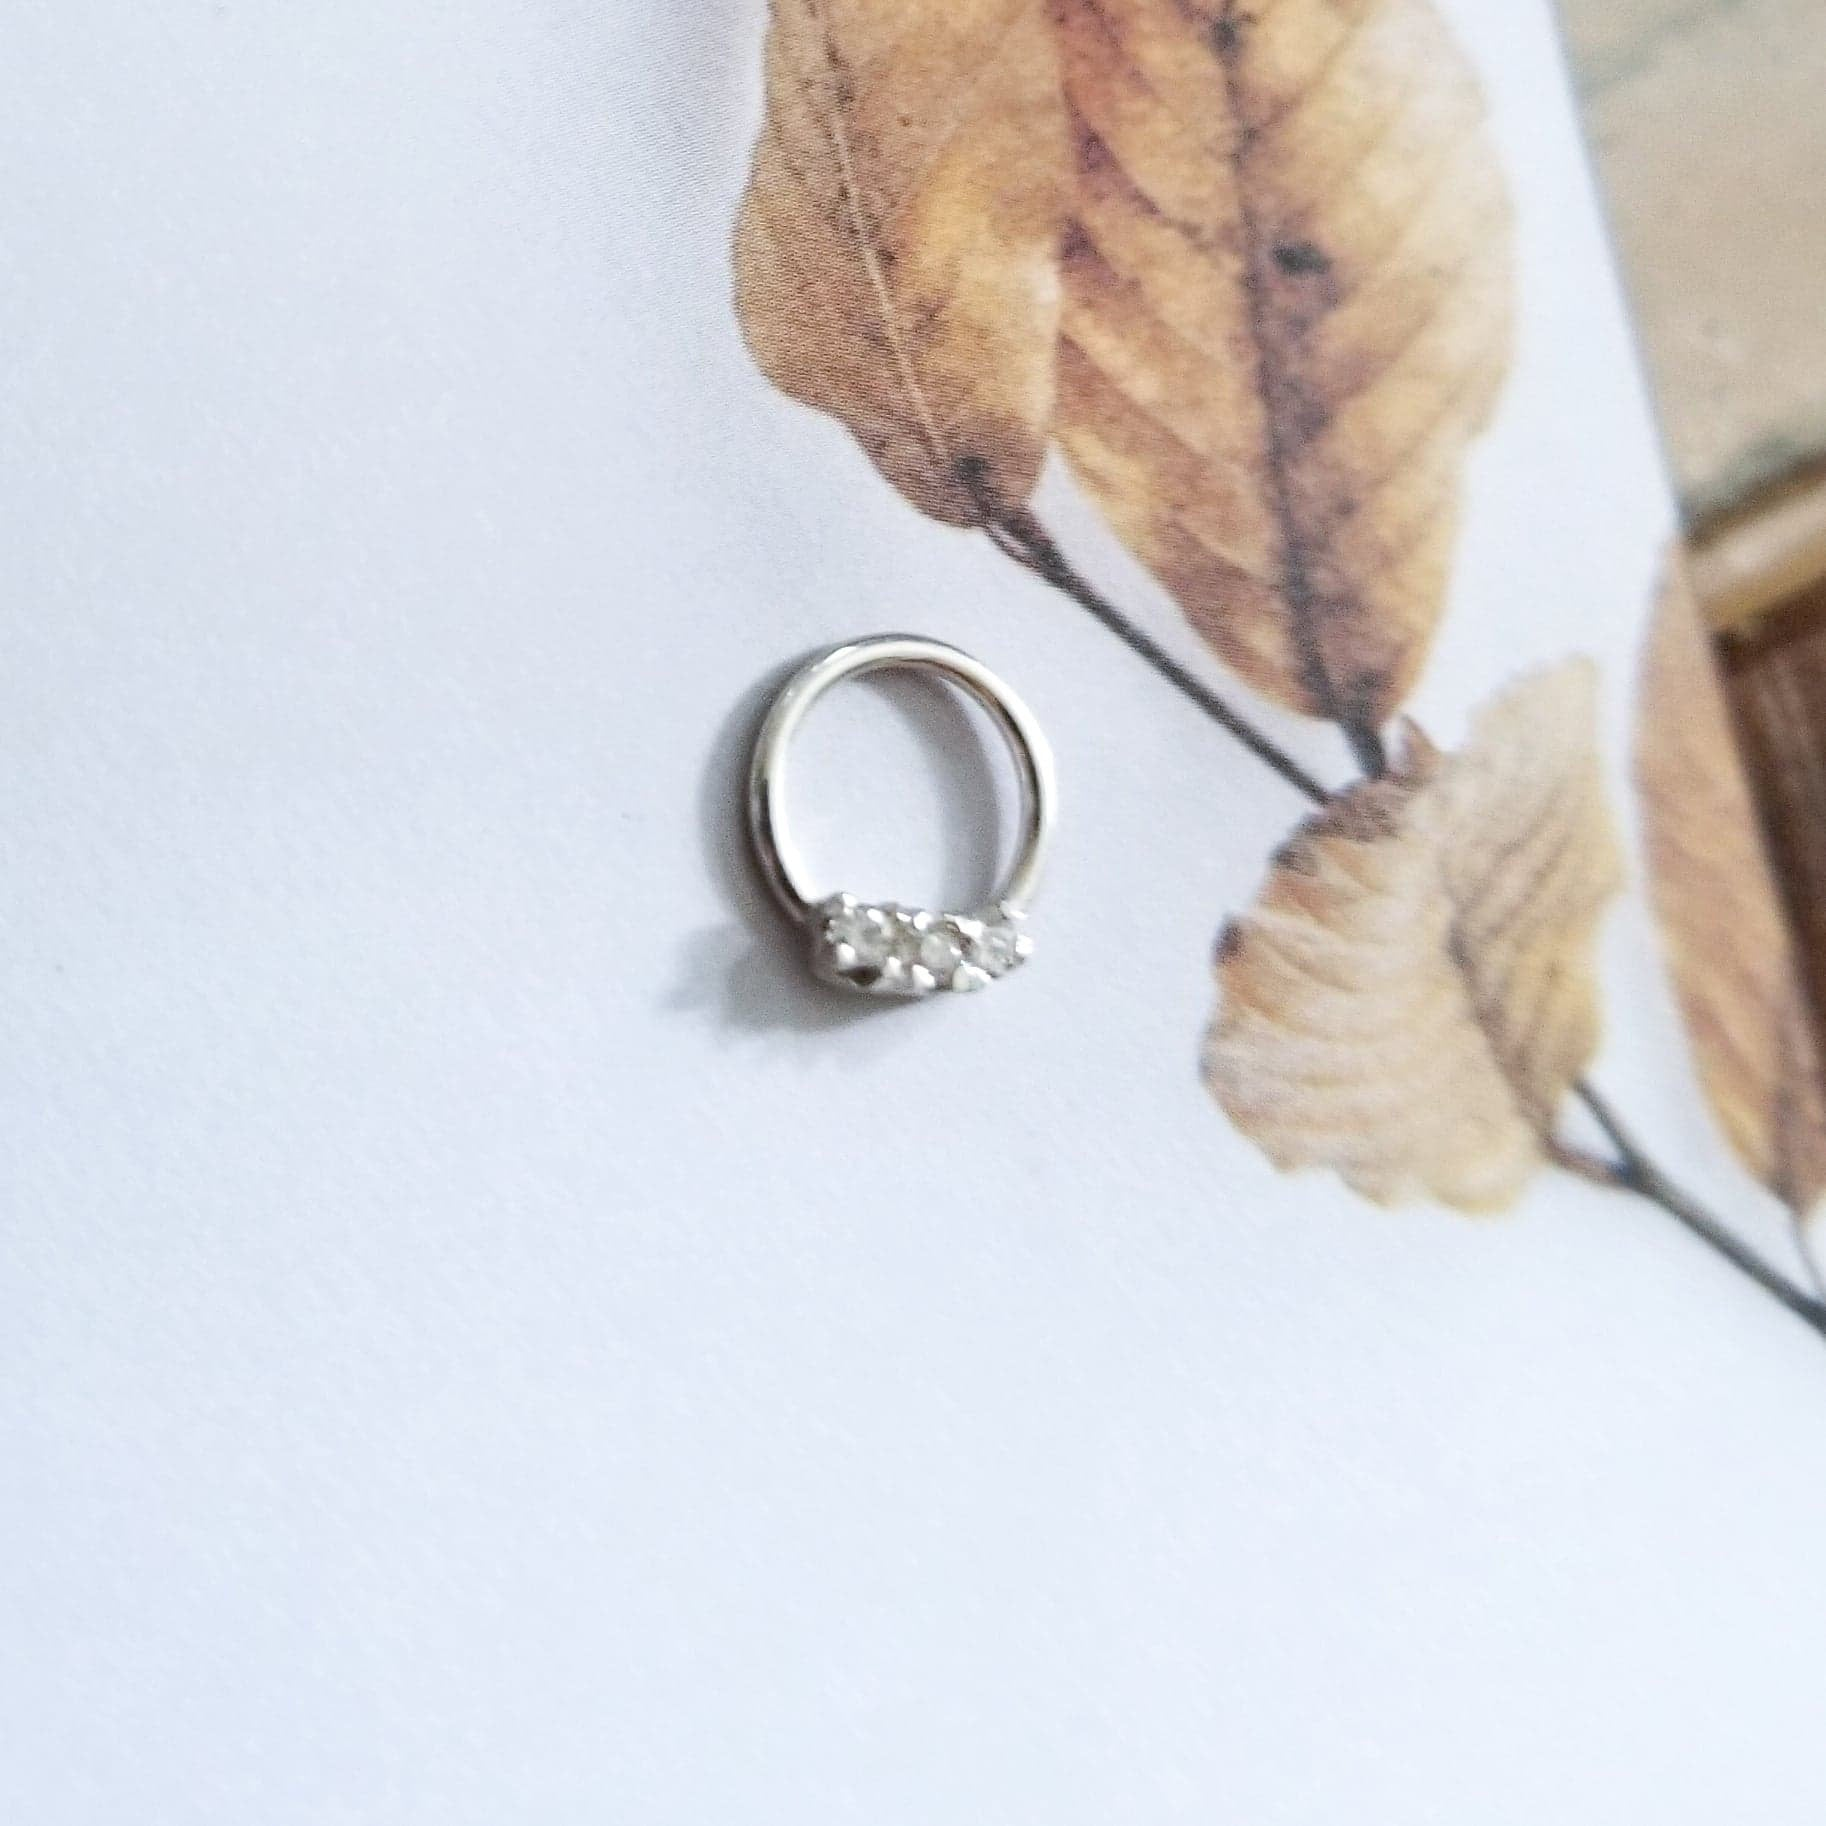 3 Clear Cz Silver Nose Ring - Inchoo Bijoux